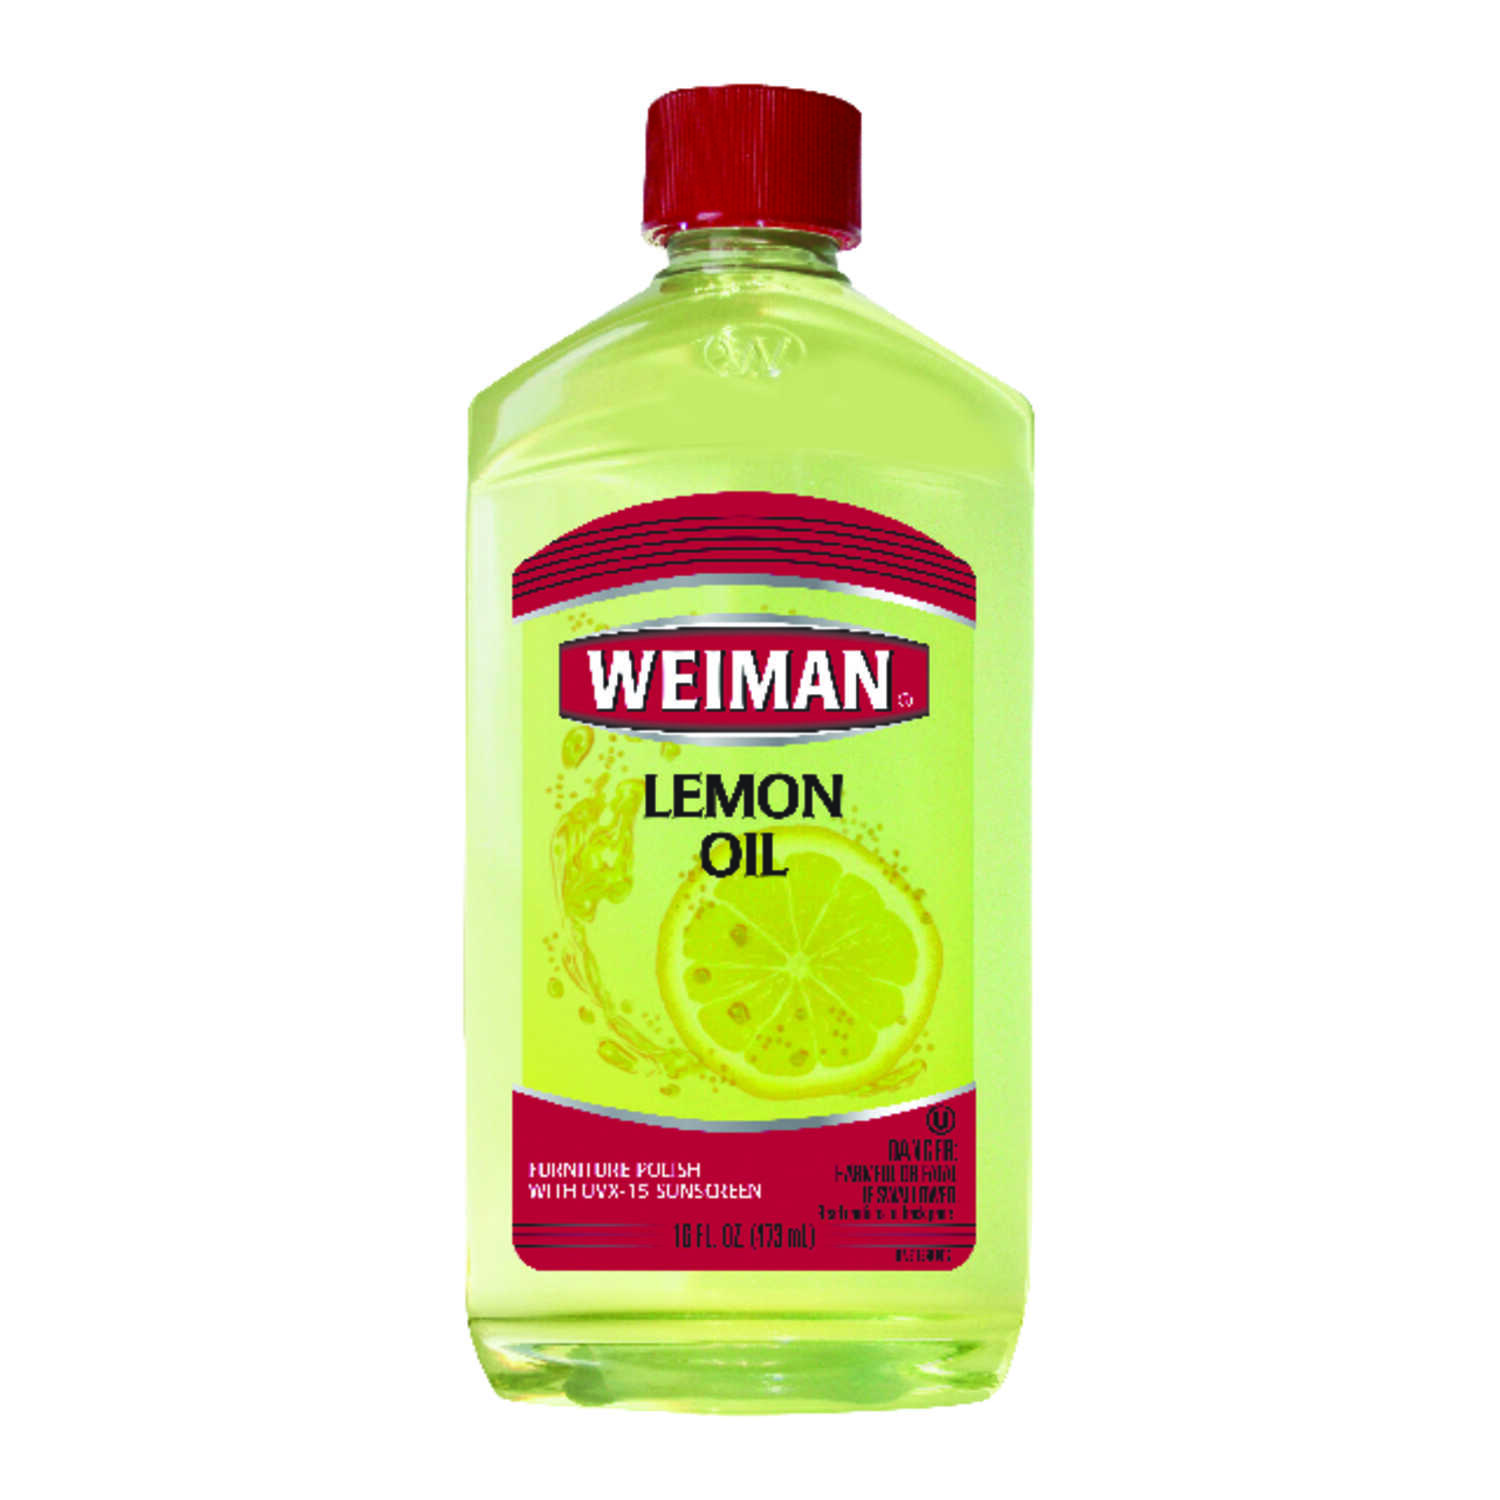 Weiman  Lemon Scent Lemon Oil  16 oz. Liquid